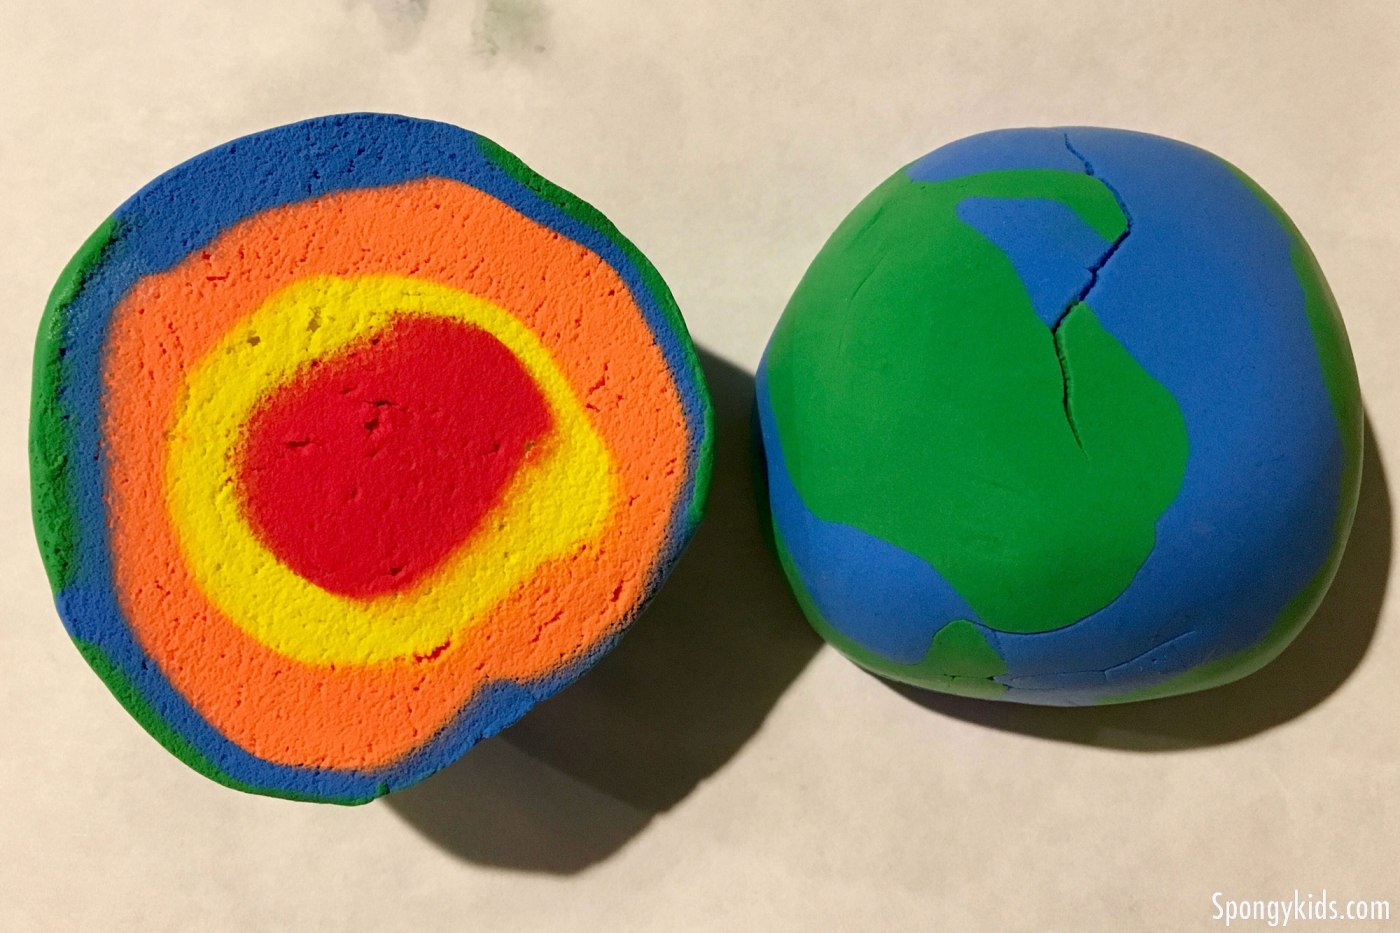 DIY: How to make a model of layers of the Earth with Play doh